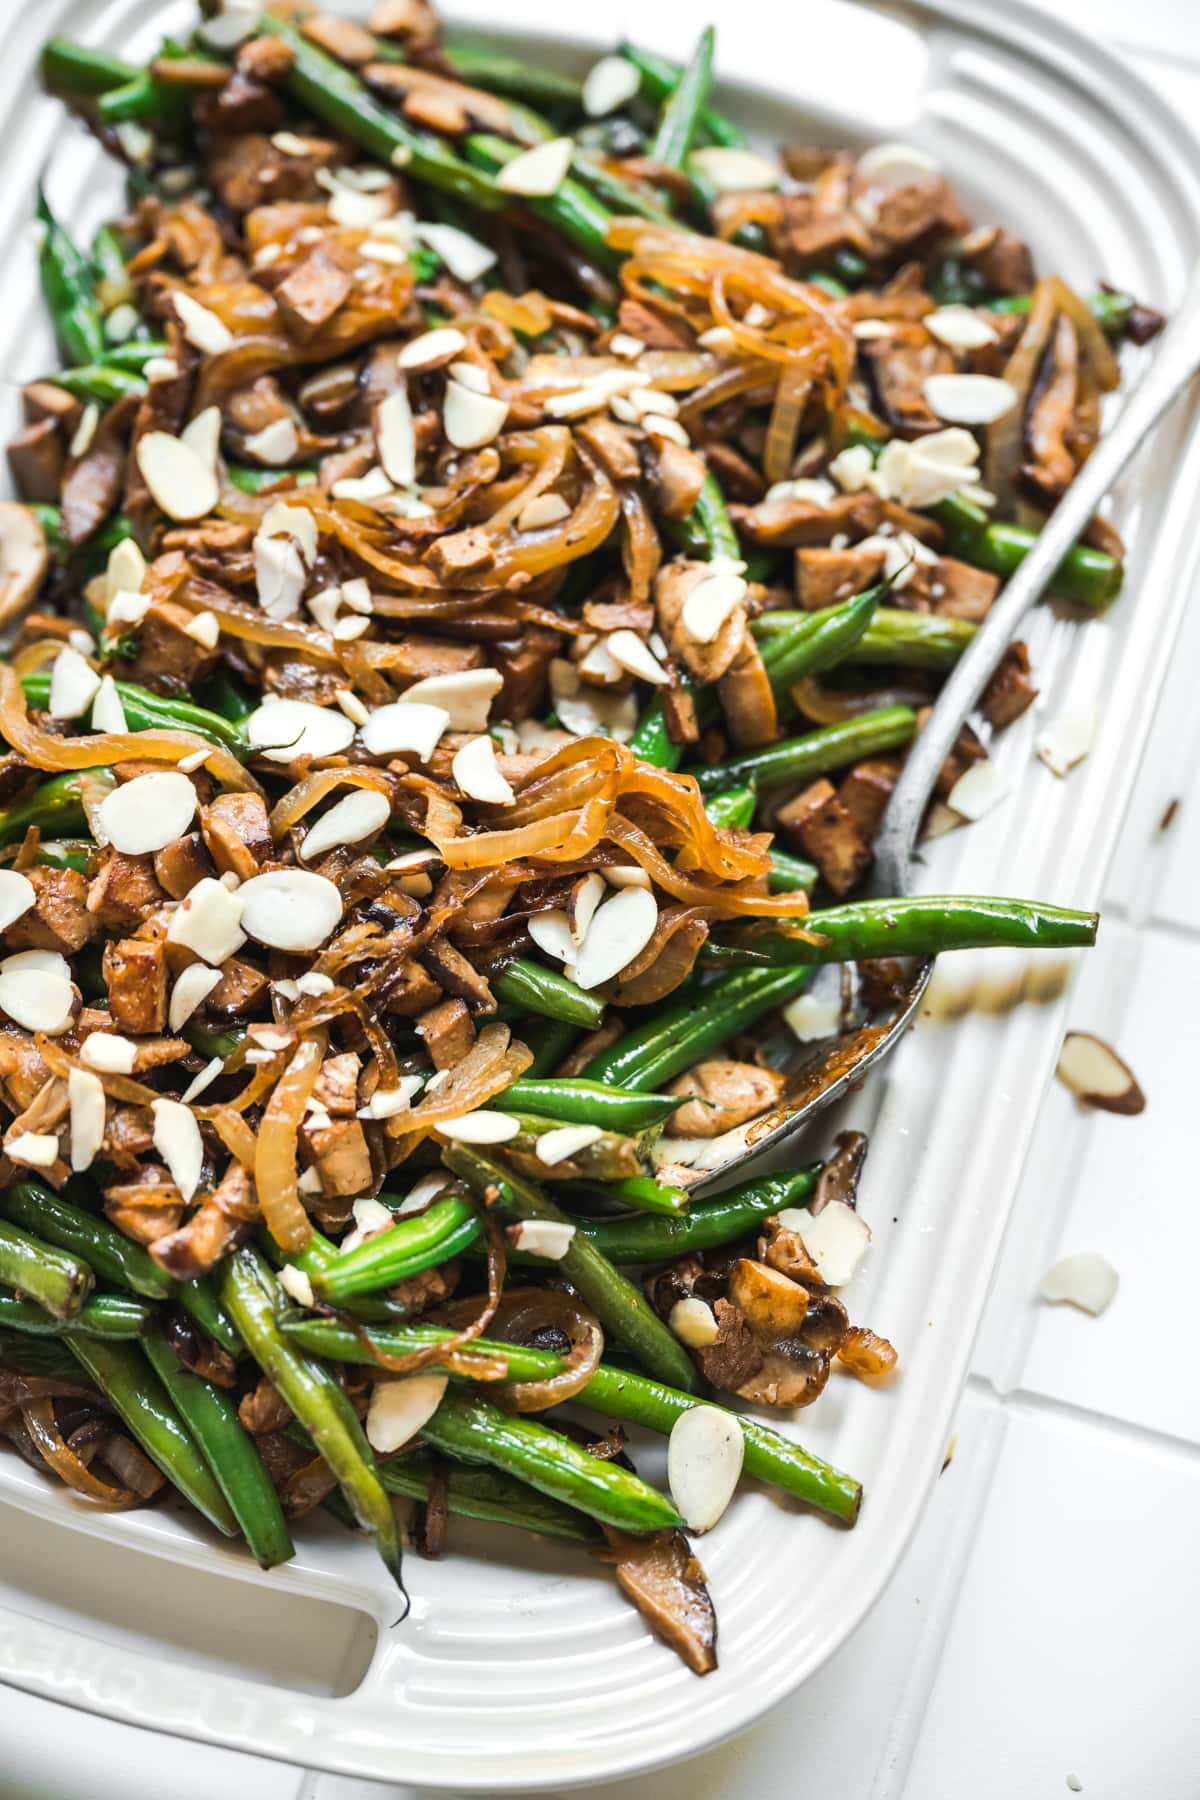 close up side view of vegan green beans with tofu bacon, mushrooms and caramelized onions on white platter.